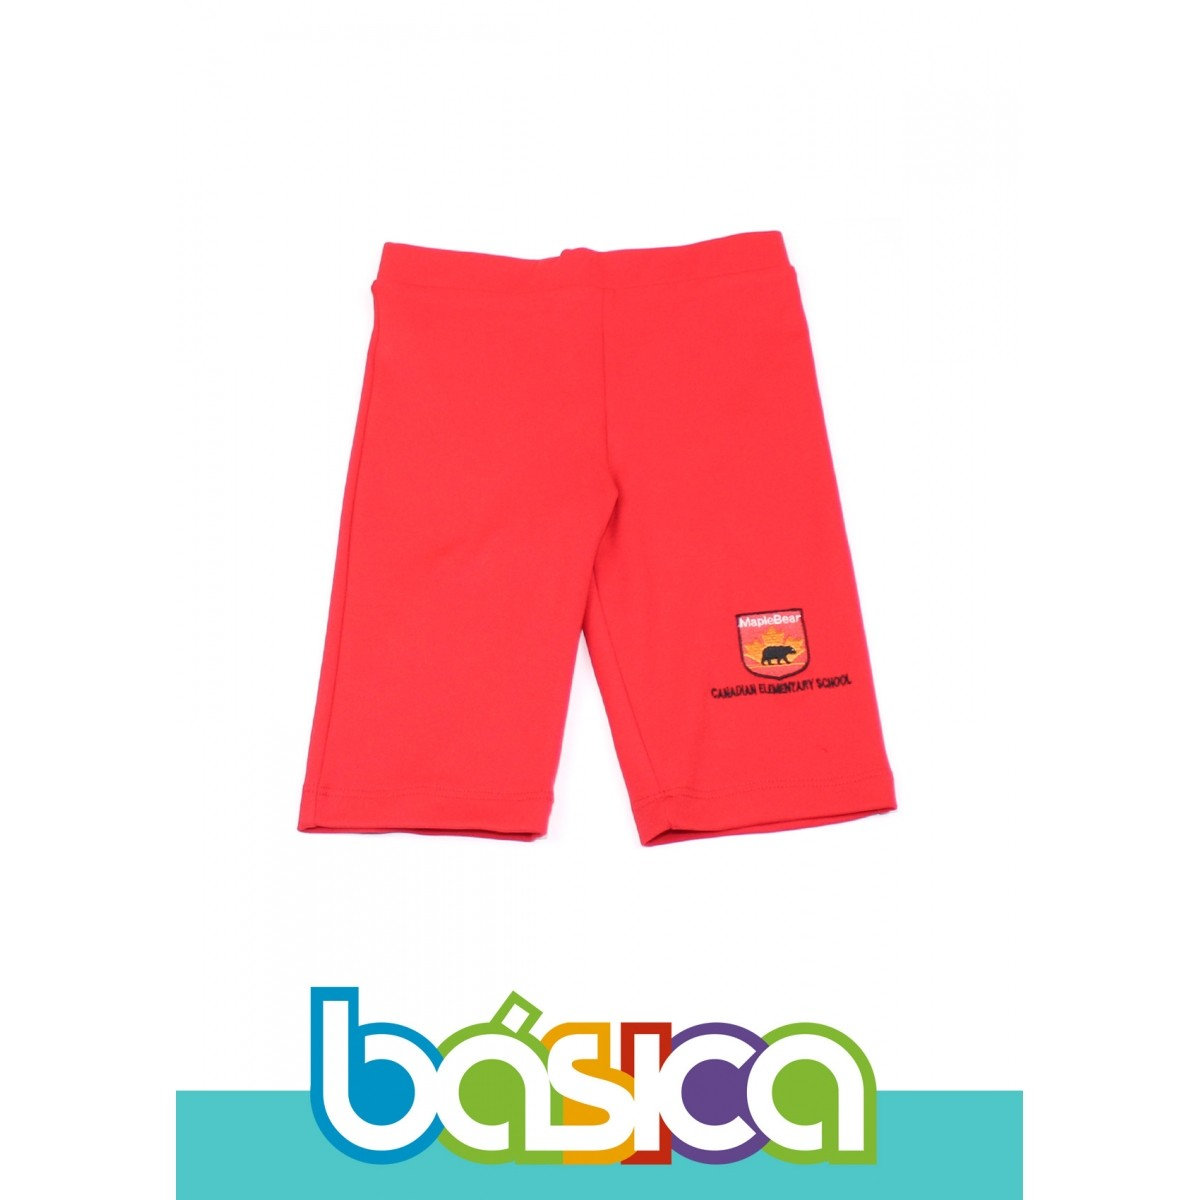 Bermuda Ciclista de Helanca Uniforme Maple Bear Fundamental  - BÁSICA UNIFORMES